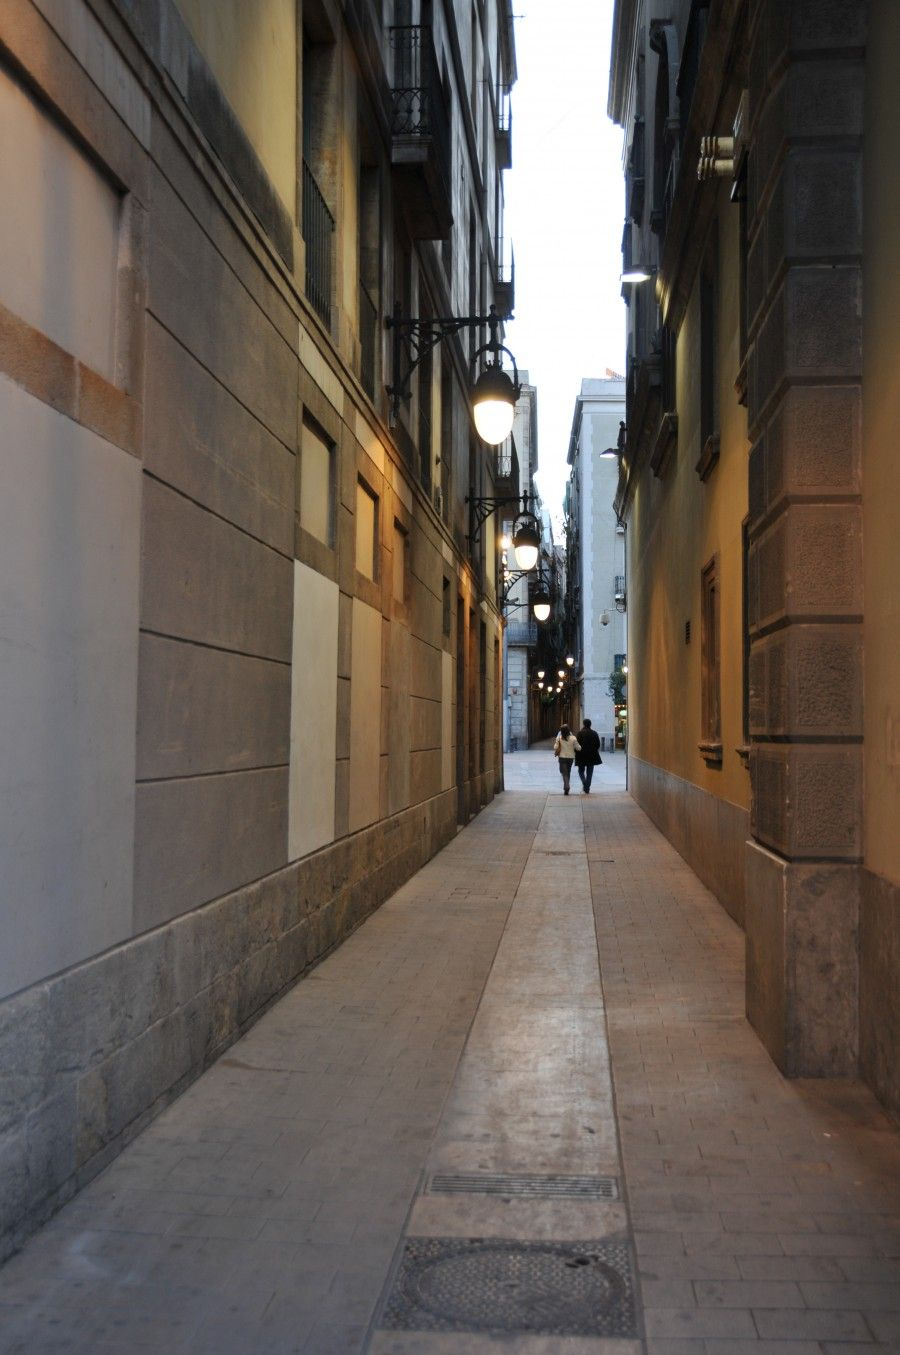 The_narrow_streets_of_Barcelone_(3409904329)